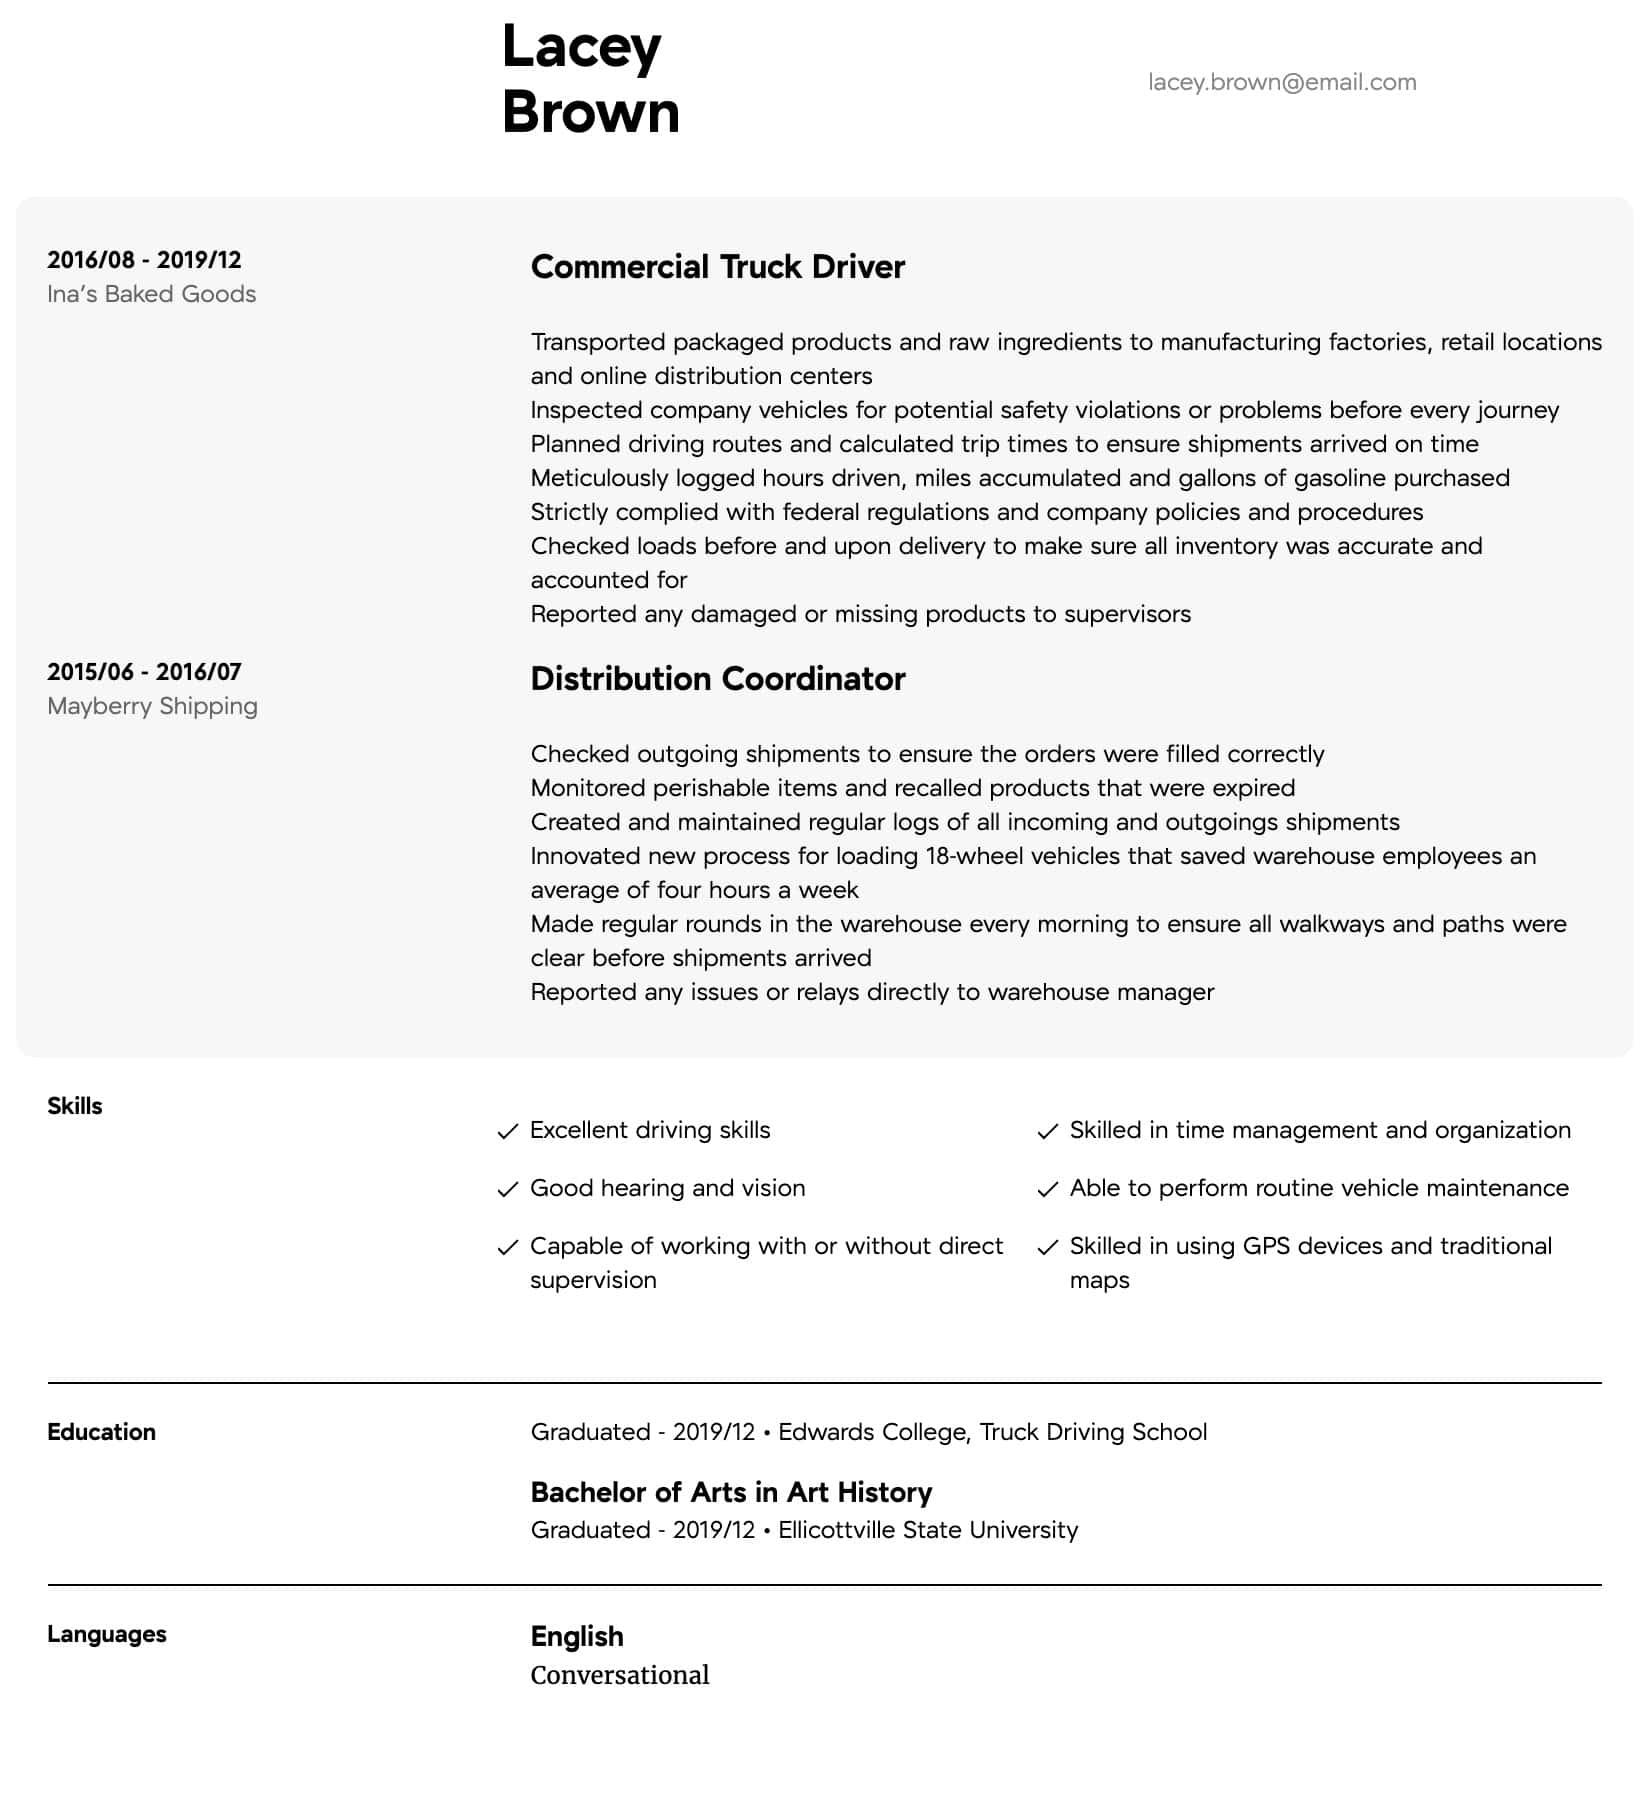 truck driver resume samples all experience levels entry level intermediate front desk job Resume Entry Level Truck Driver Resume